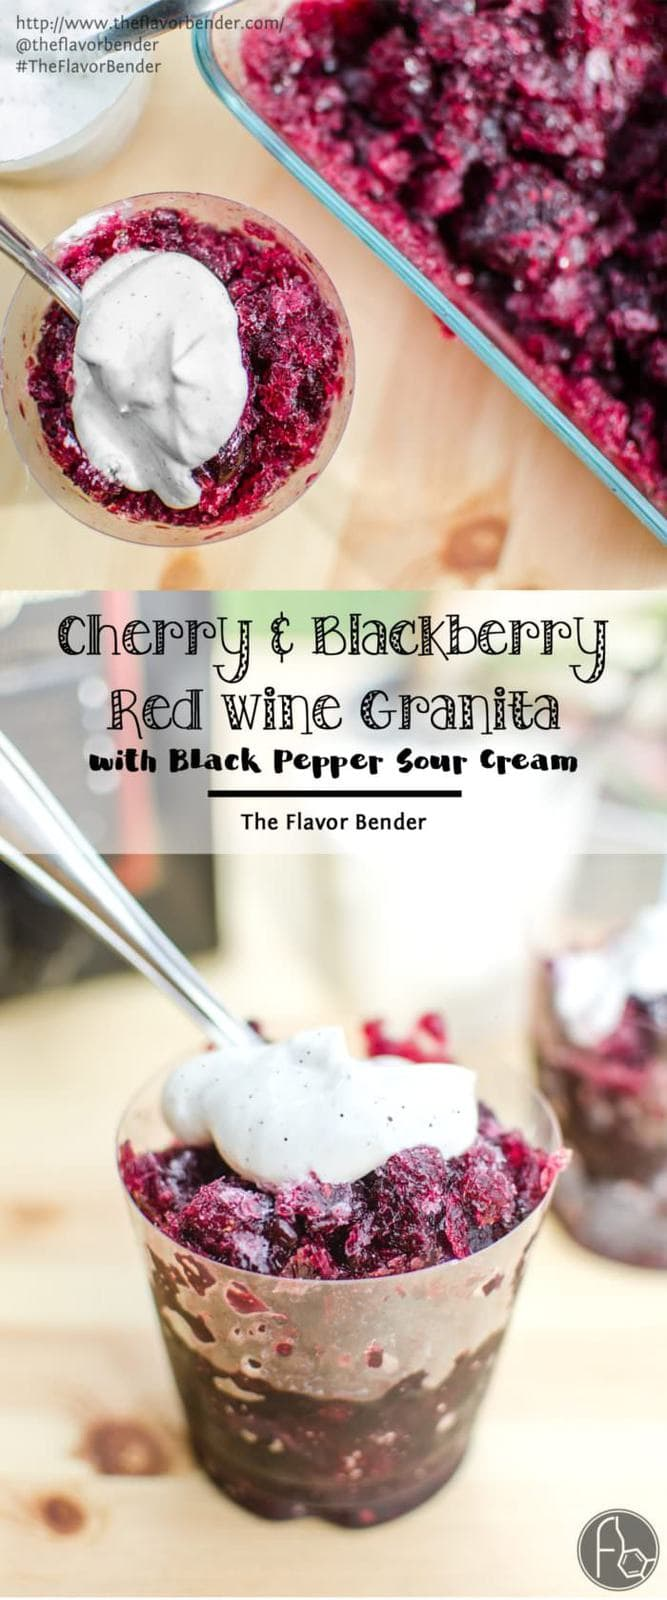 Cherry and Blackberry Red Wine Granita with Sweetened Black Pepper Sour Cream. - A delicious and simple dessert that is perfect for summer! Fruity, sweet, boozy and full of flavor and then topped with a creamy, tangy sour cream with a little spice! Made with Black Box Wines. REPIN to save! CLICK to get the recipe! #TheFlavorBender